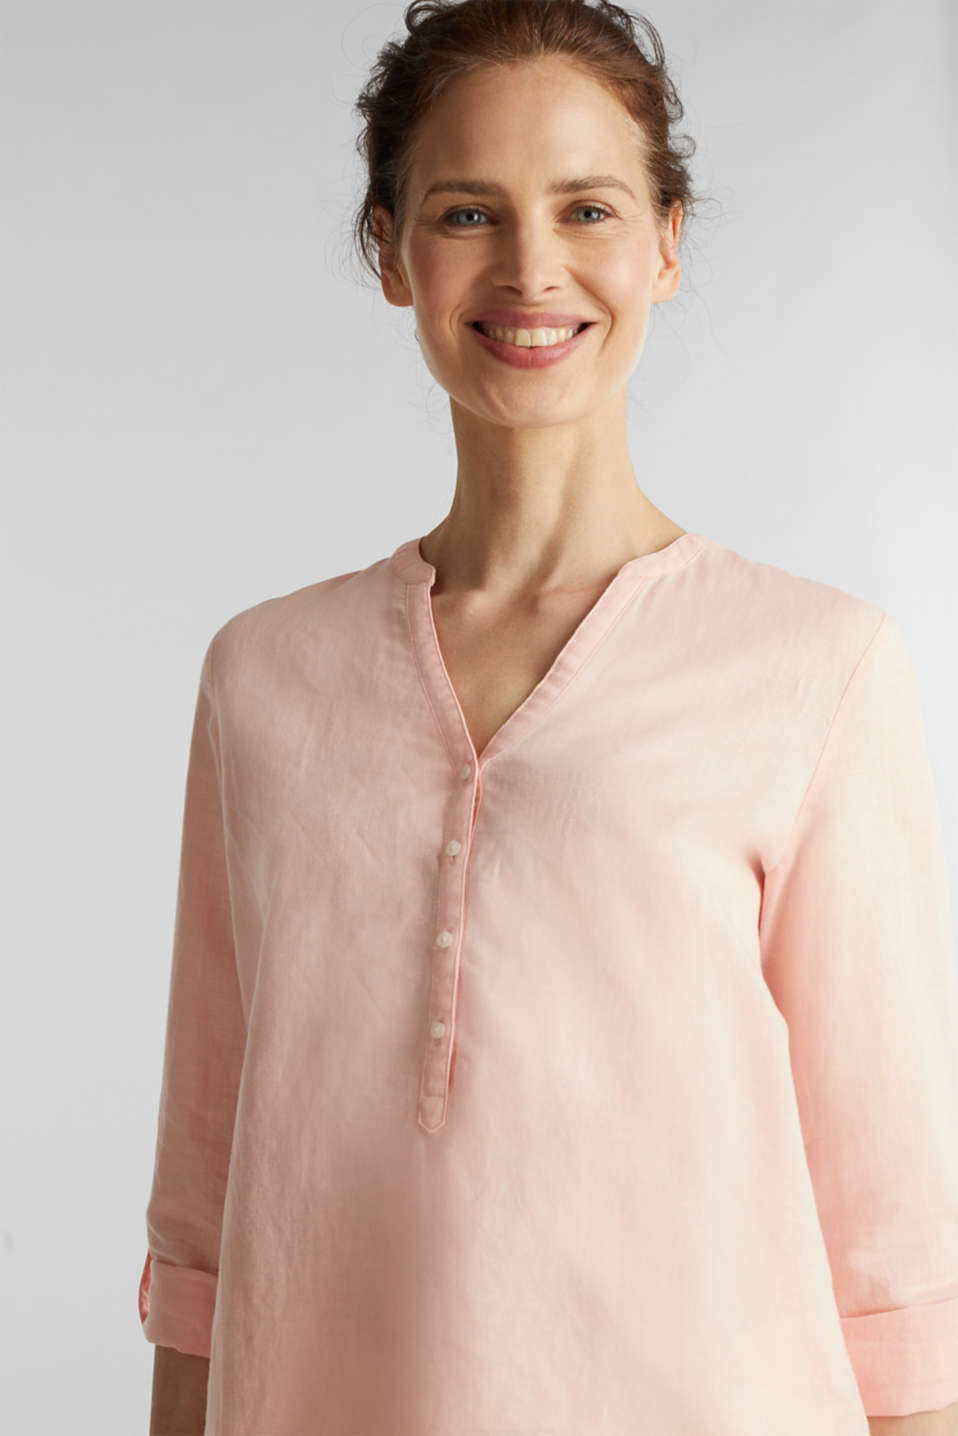 Turn-up blouse in blended linen, PEACH, detail image number 6